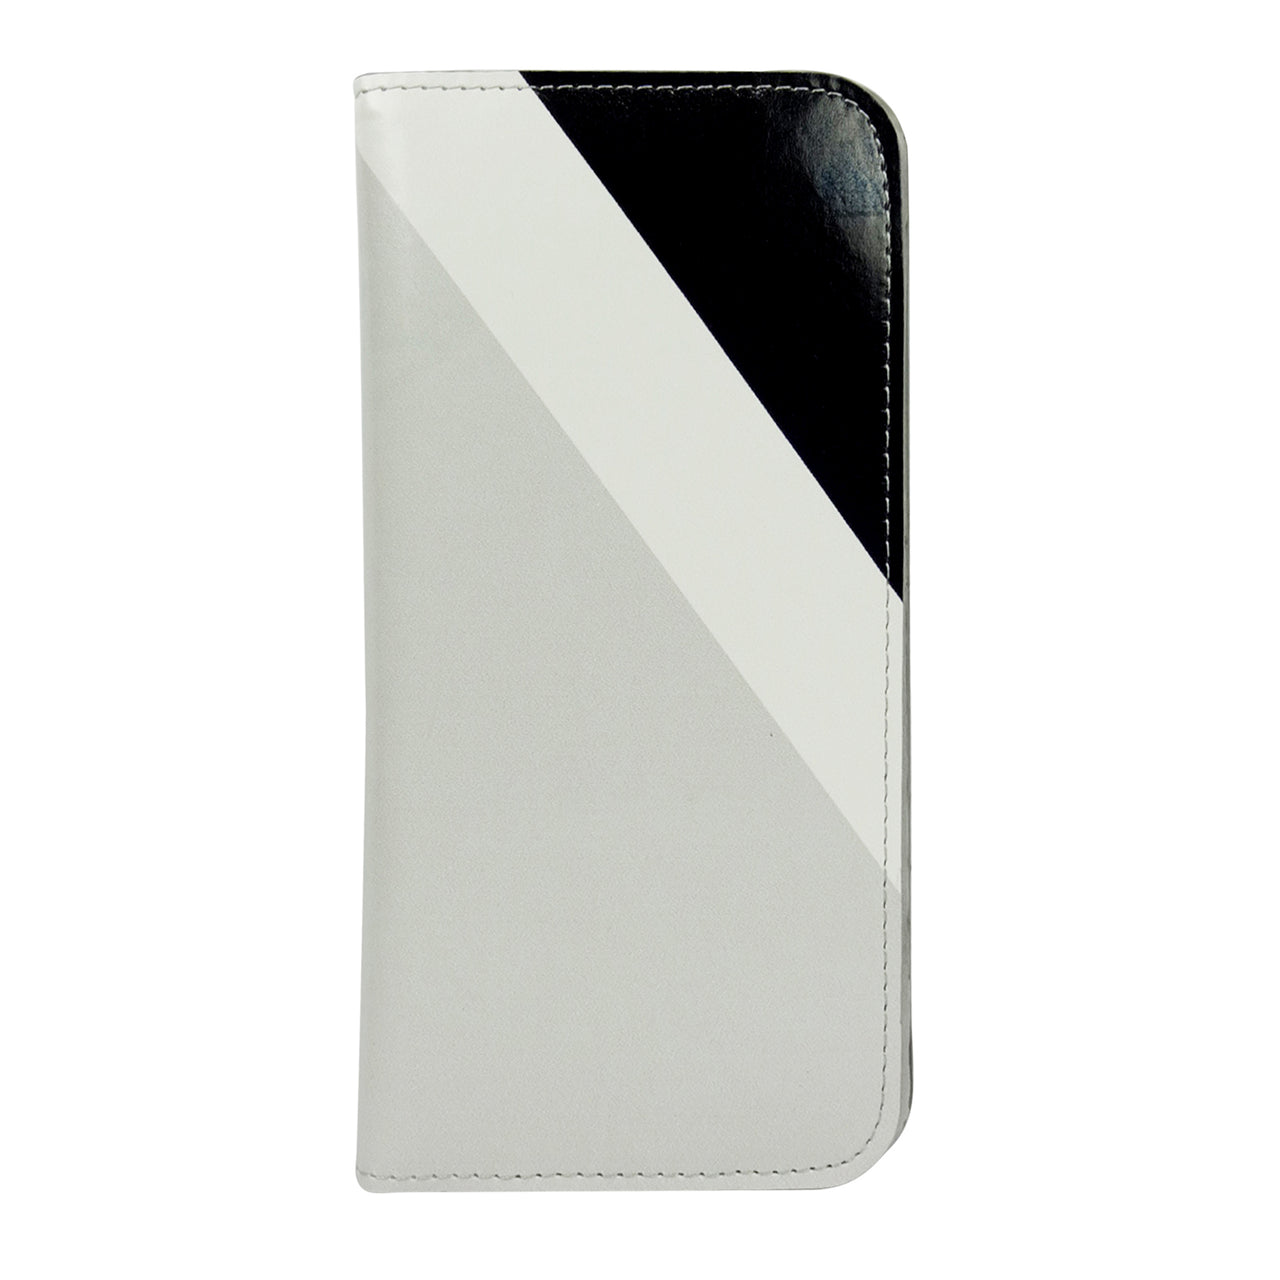 Magnetic Slim Wallet - Black Grey